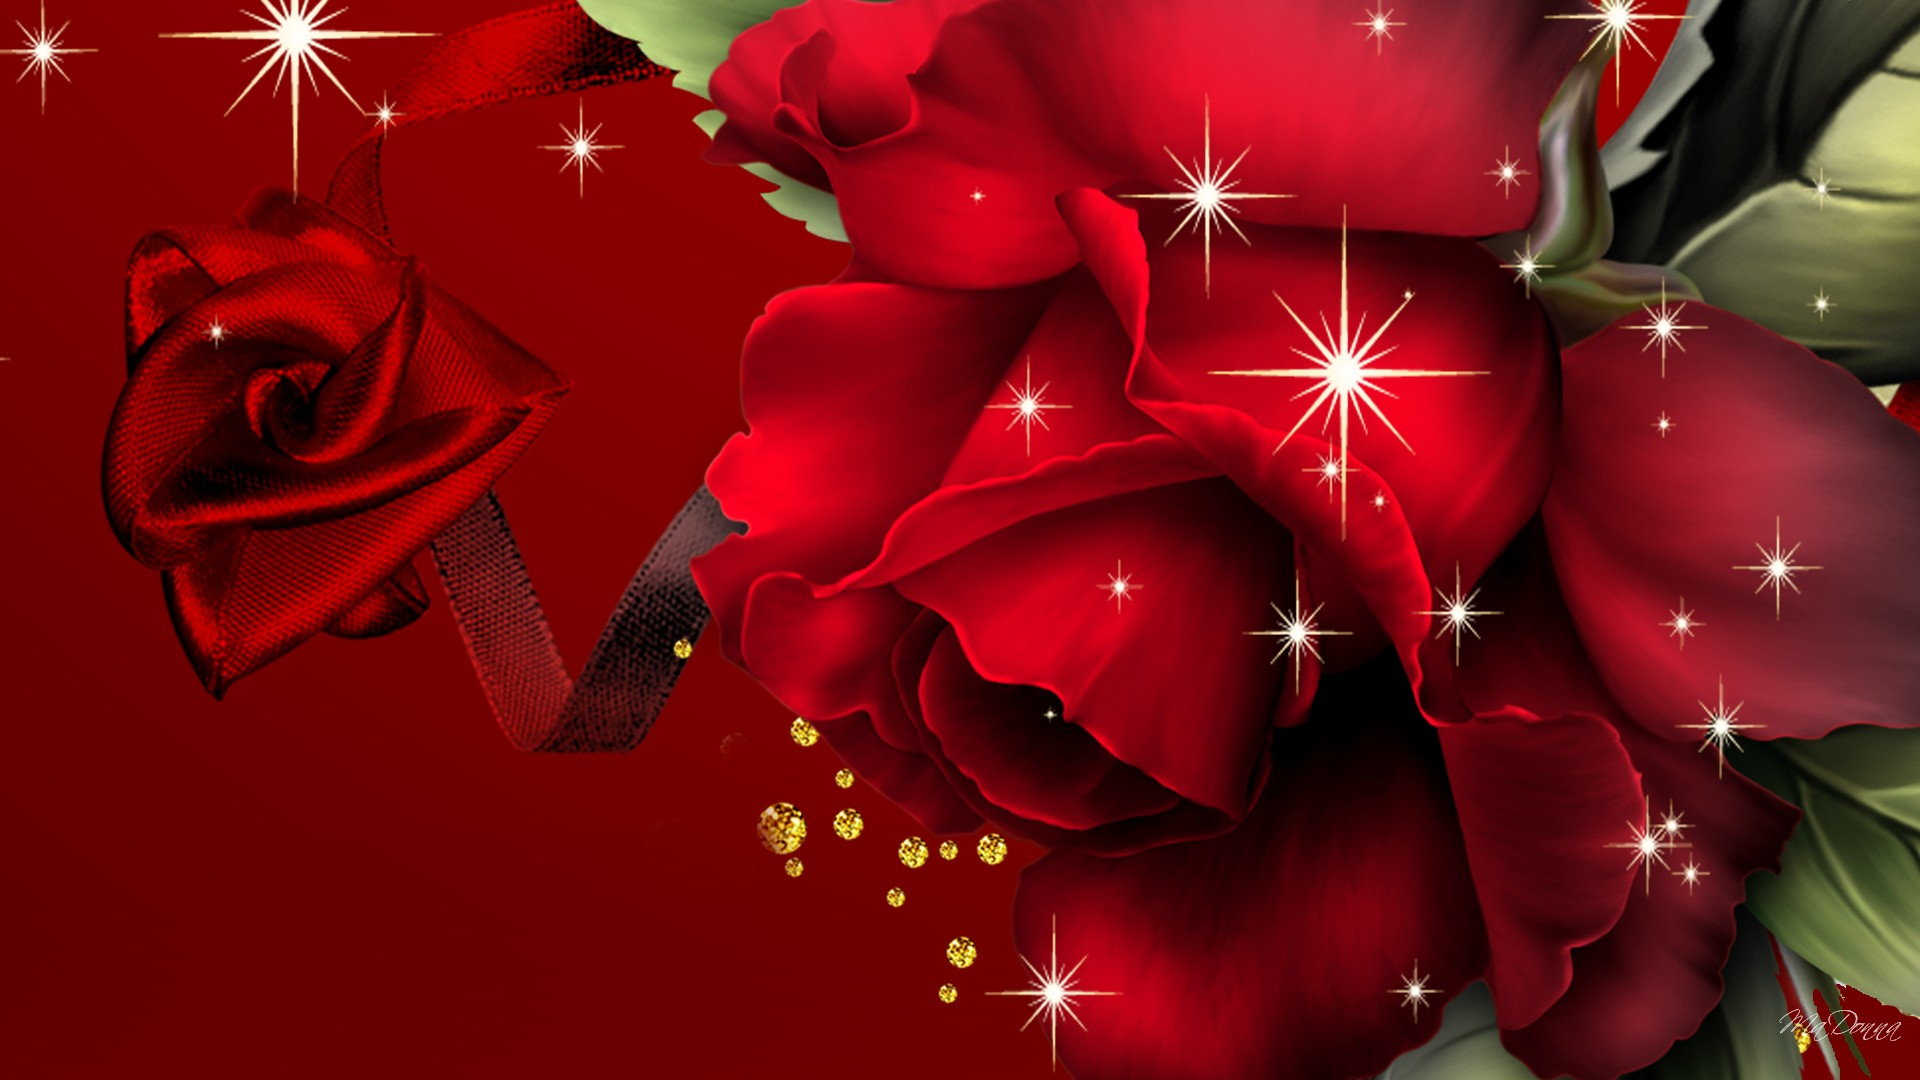 red rose background hd - photo #23